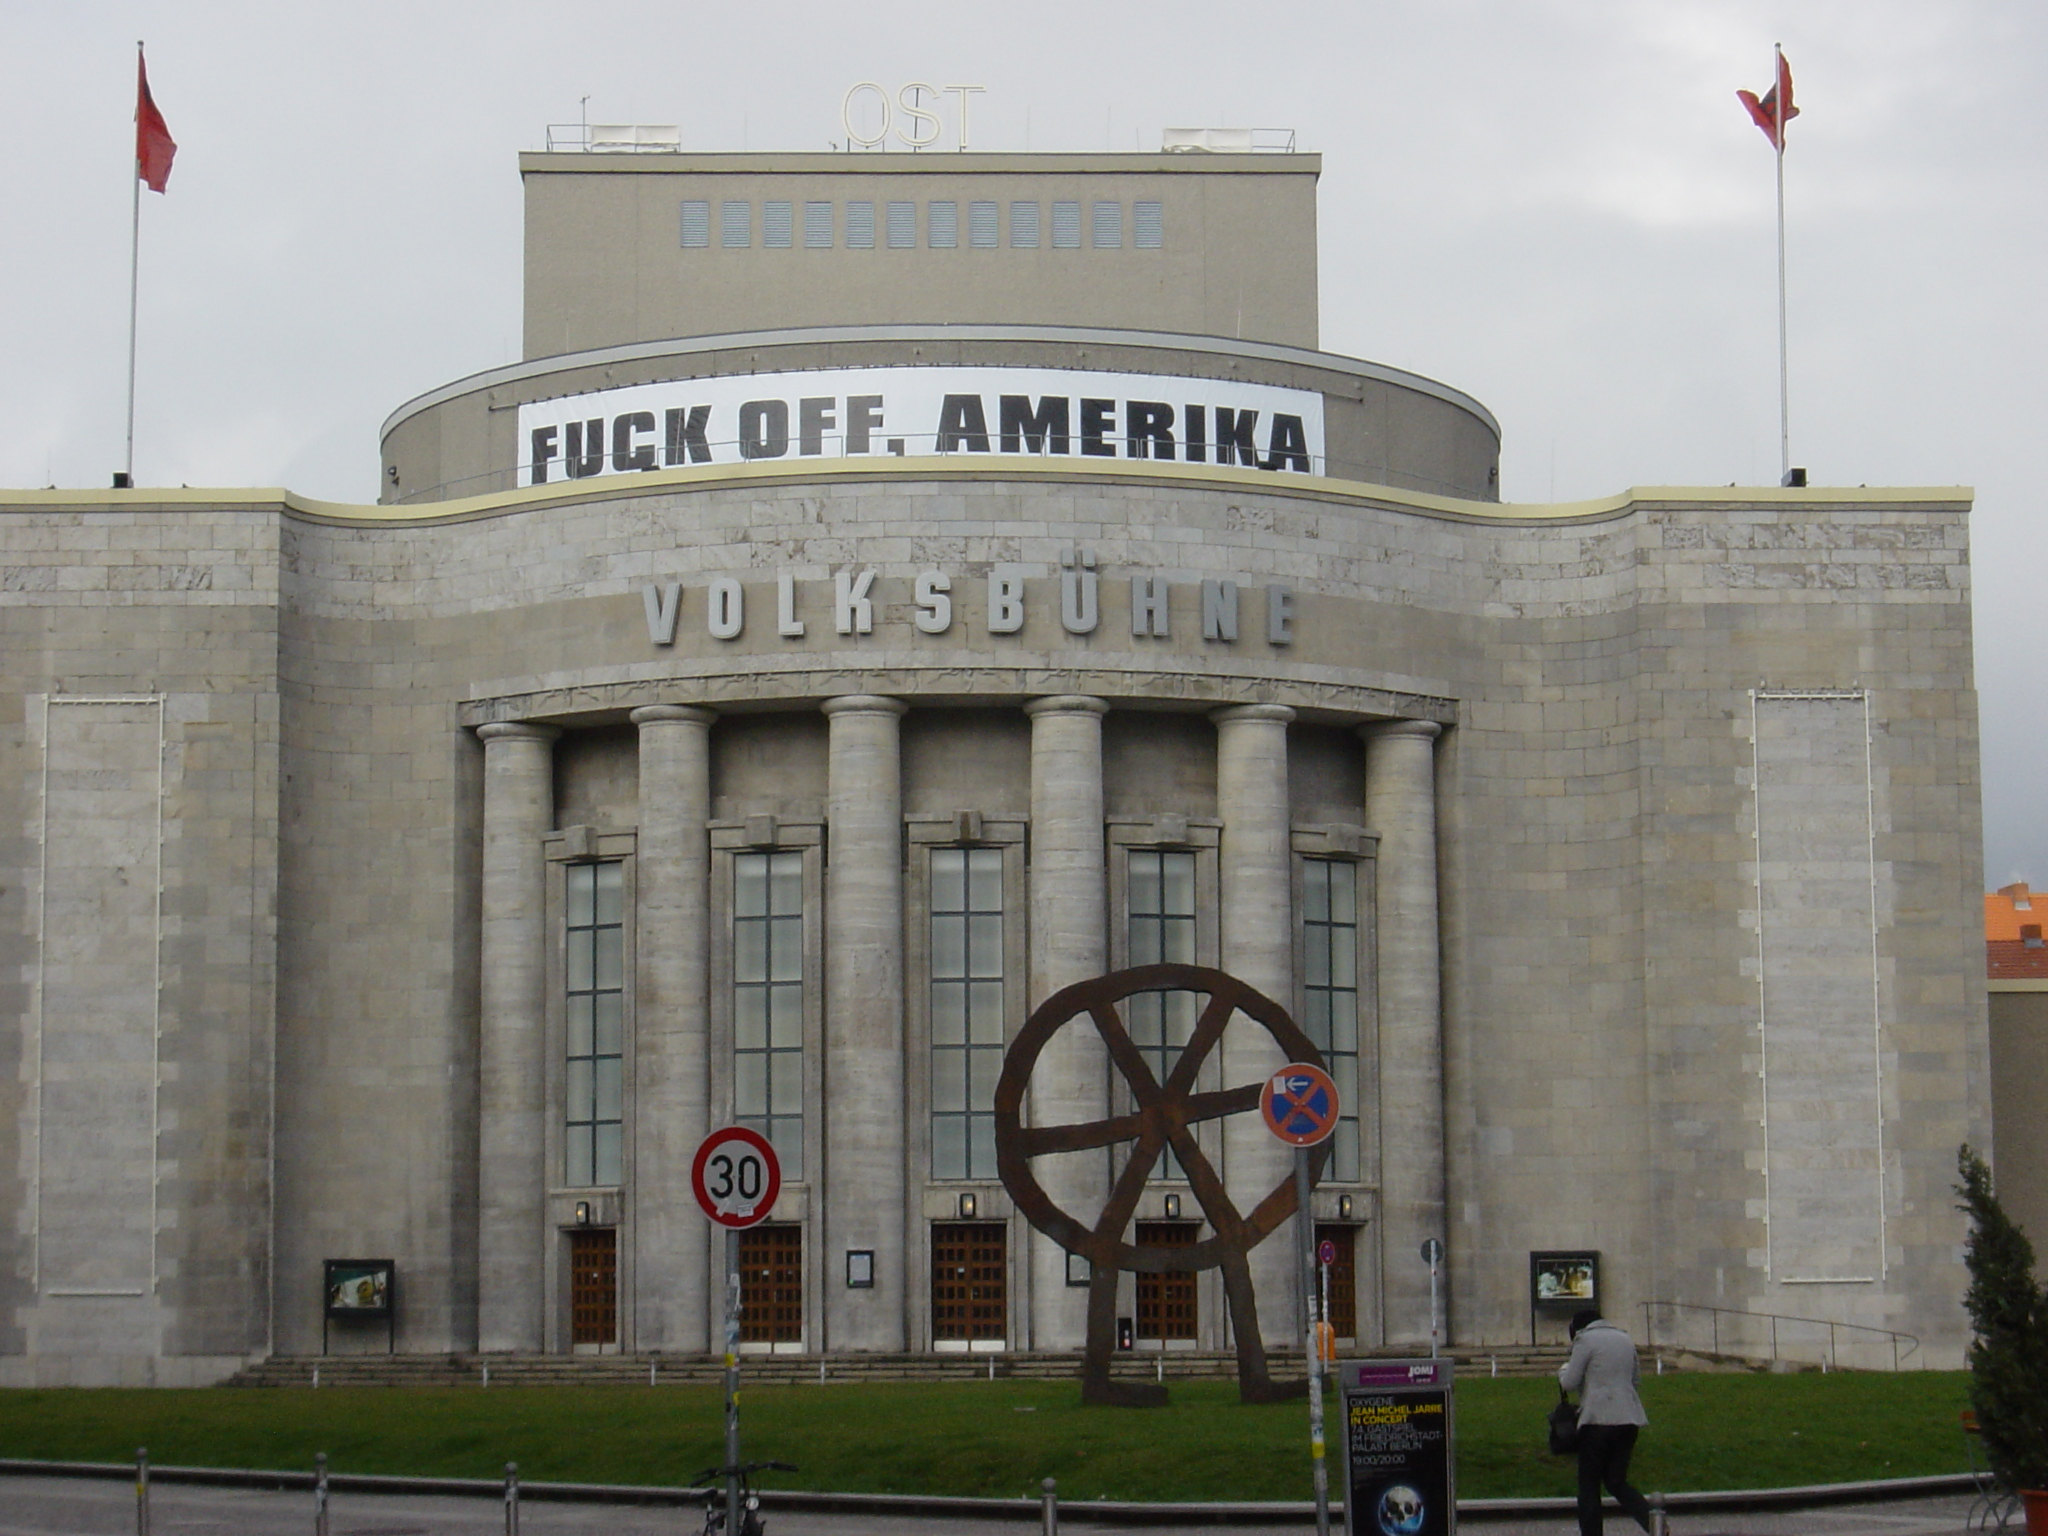 Volksbuehne, March 2008, a banner advertising the staging of Eduard Limonov's Fuck off, Amerika, The original uploader was Theearthshaker, CC BY-SA 3.0. Source: commons.wikimedia.org.